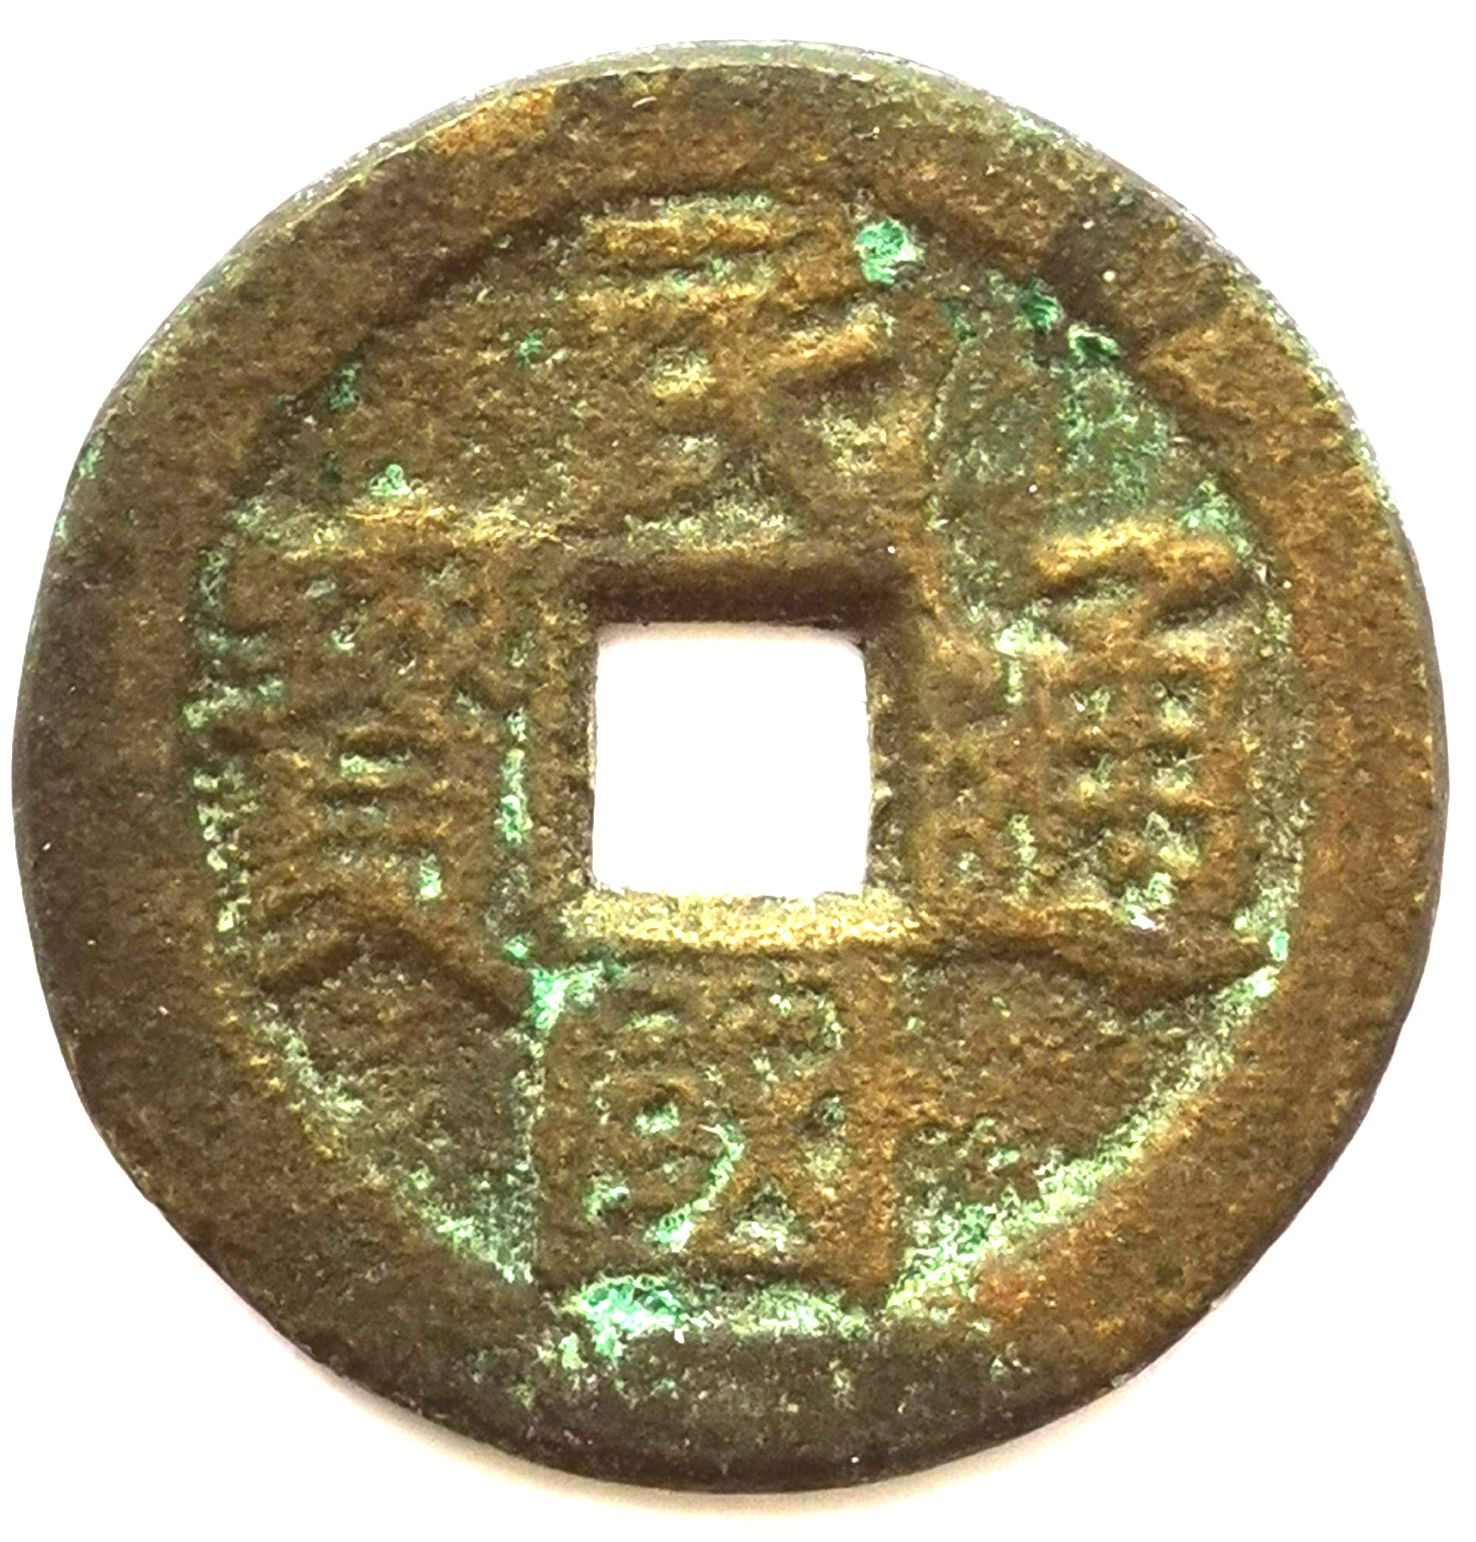 K5210, China Last Cash Coin, Min Kuo Thong Bao, AD 1912